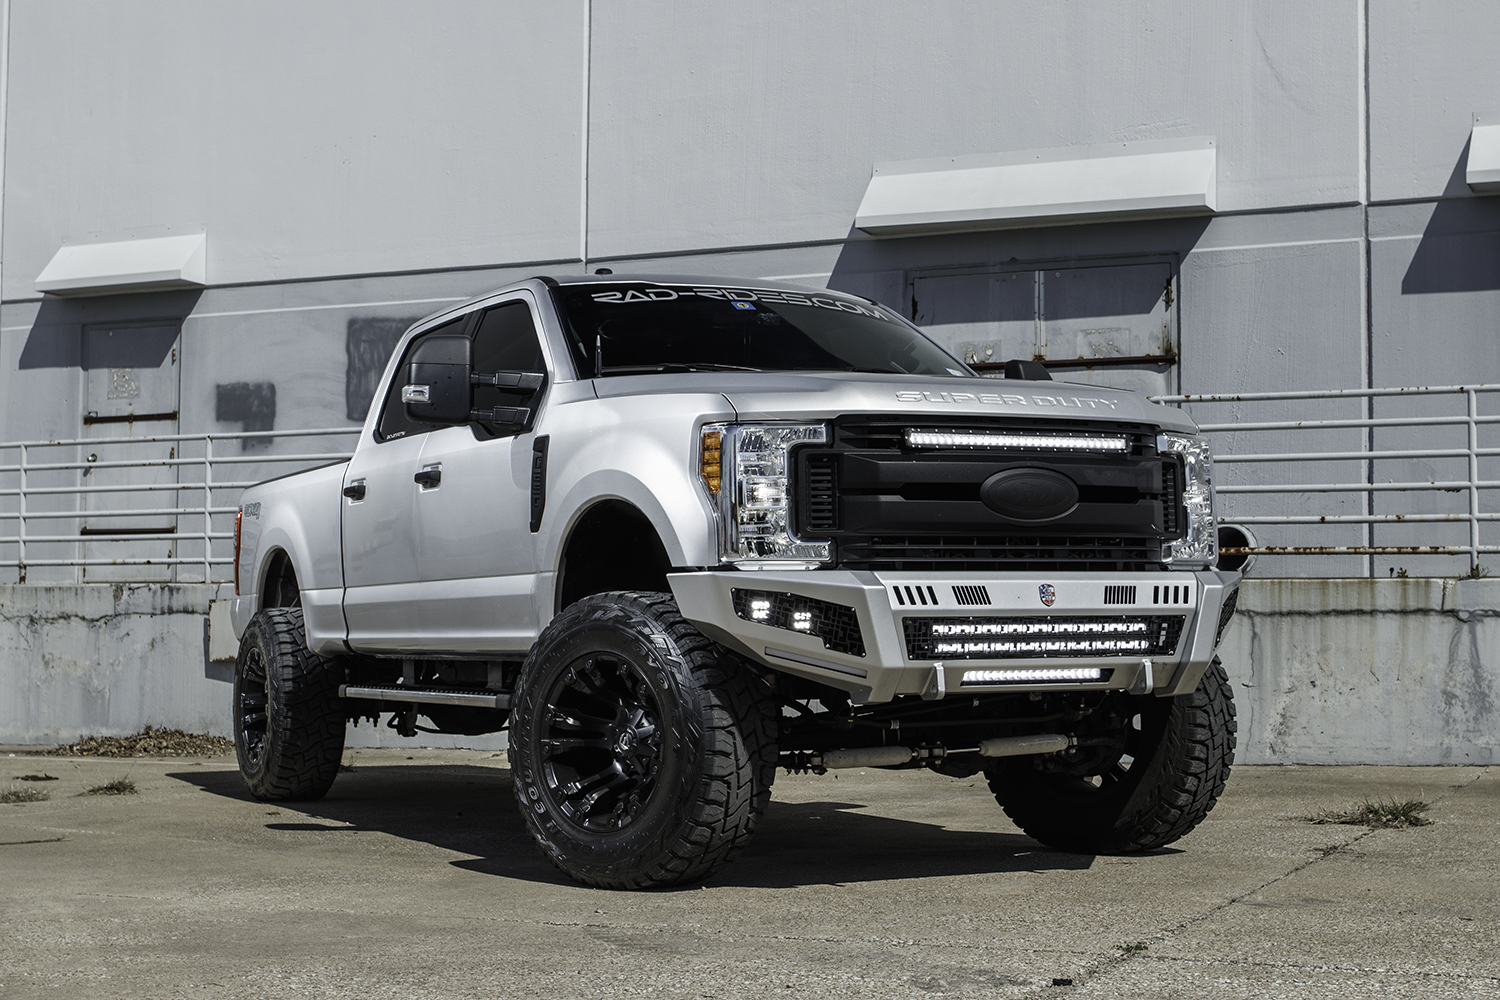 Ford f 250 super duty lifted 4x4 truck with road armor identity bumpers paint match